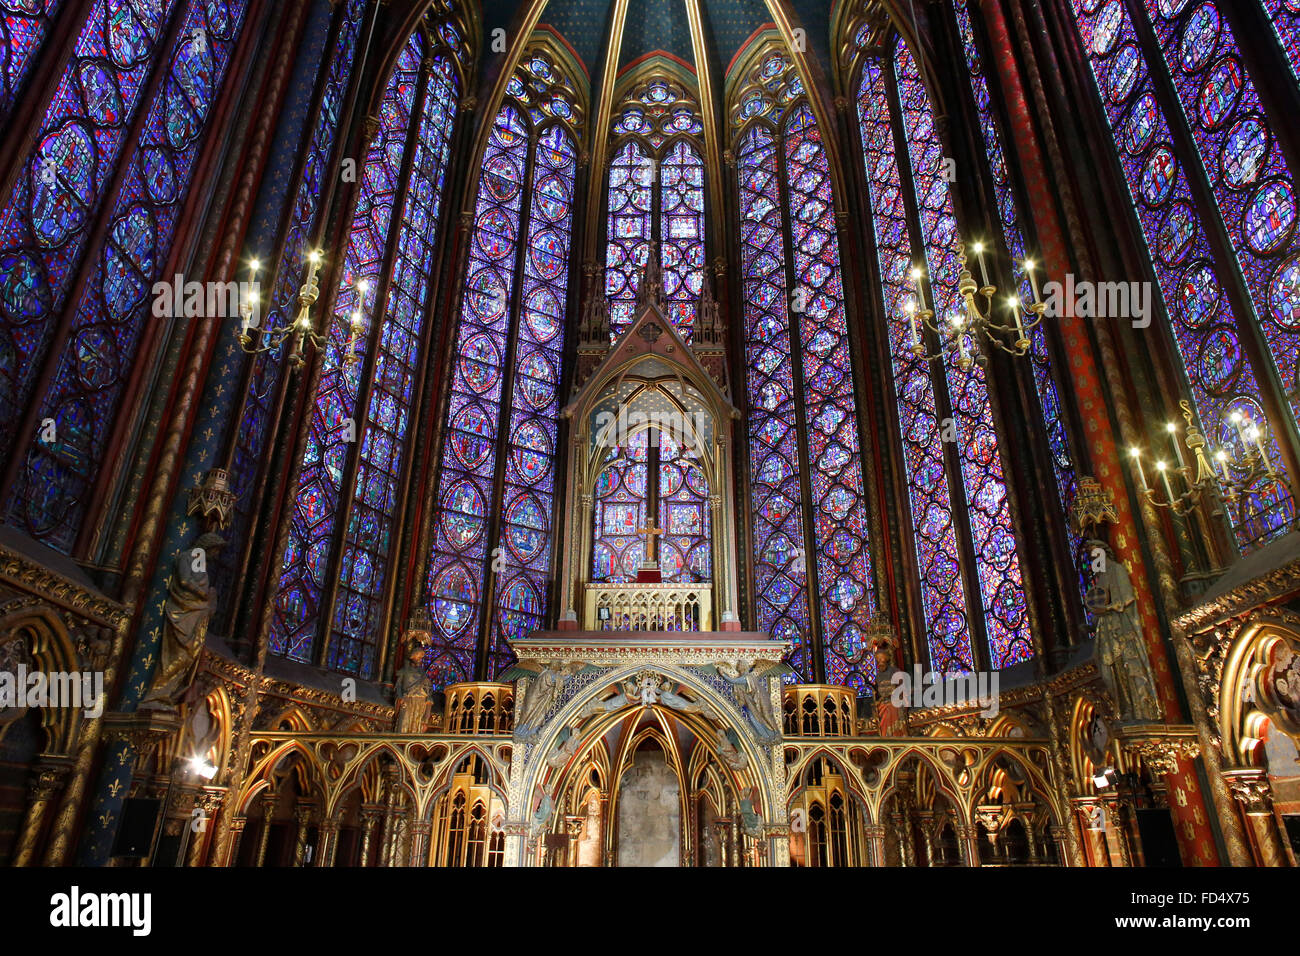 Holy Chapel. Paris. Shrine containing the great relics. Canopy sheltering the altar arches corresponding to the - Stock Image